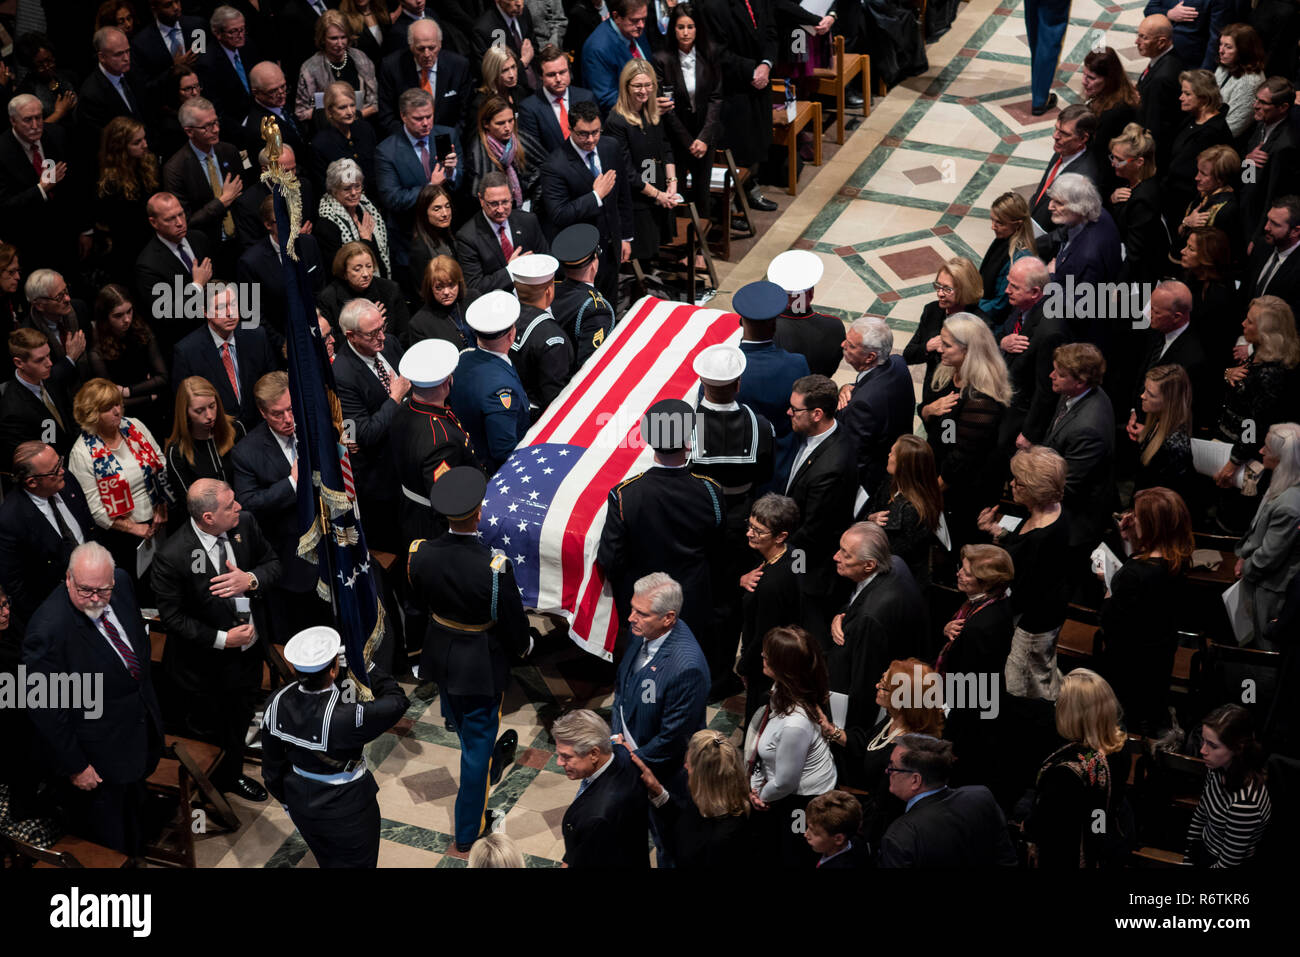 U.S. military honor guard carry the flag draped casket of former president George H.W. Bush down the aisle of the National Cathedral at the conclusion of the State Funeral December 5, 2018 in Washington, DC. Bush, the 41st President, died in his Houston home at age 94 and will be buried at his presidential library at Texas A&M University. Stock Photo